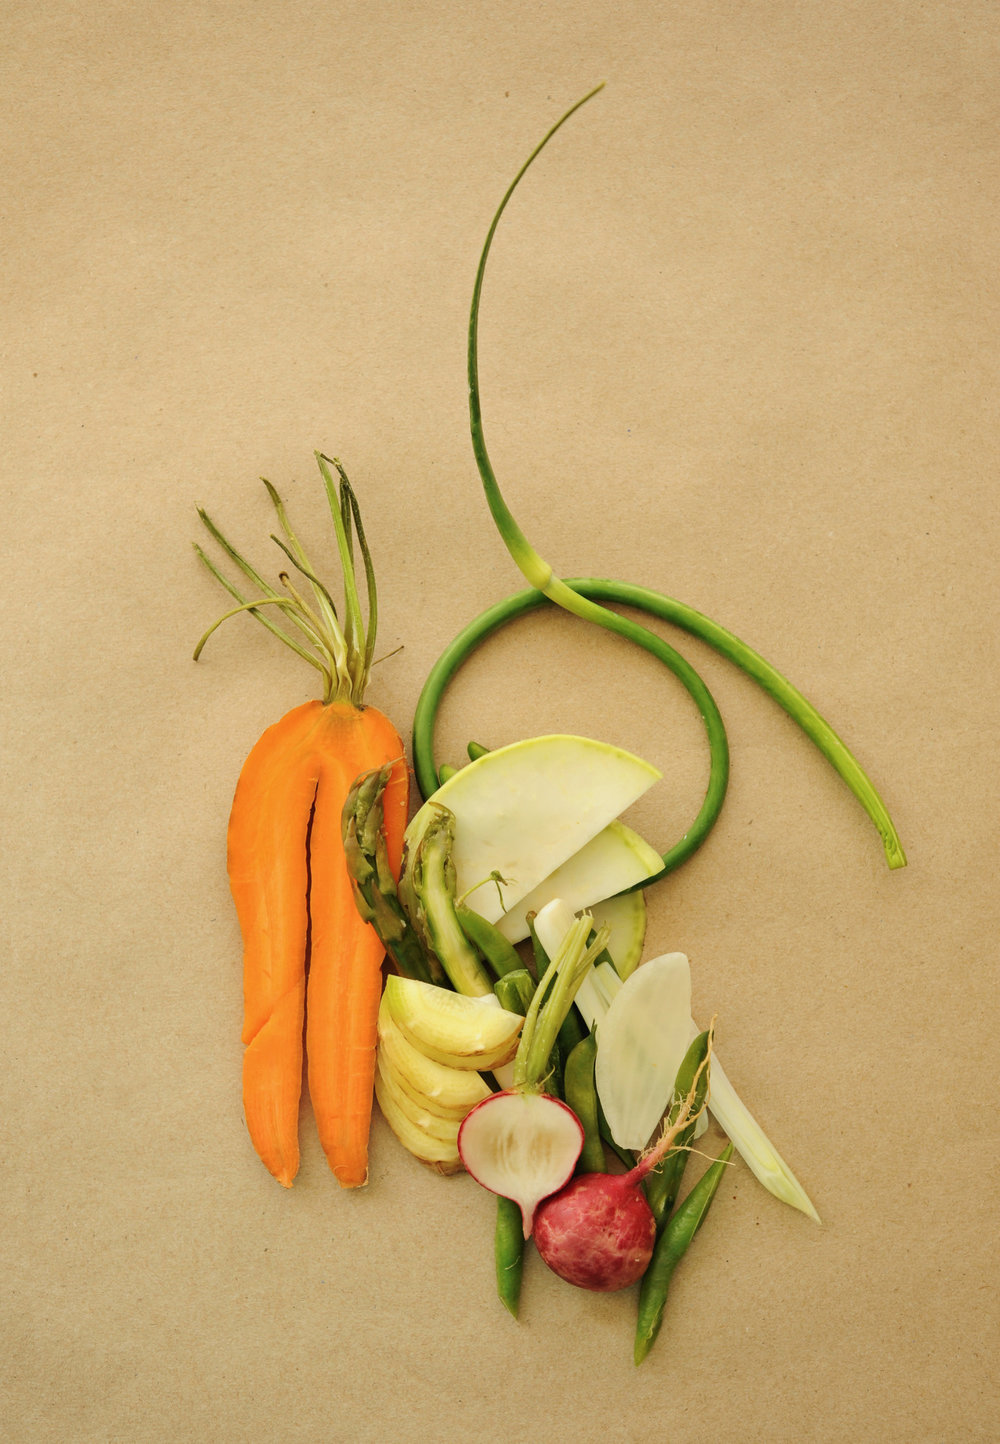 Photo by Marjorie Becker. Pictured: carrot legs, radishes, garlic scape, asparagus, onion, scallion, and green bean.